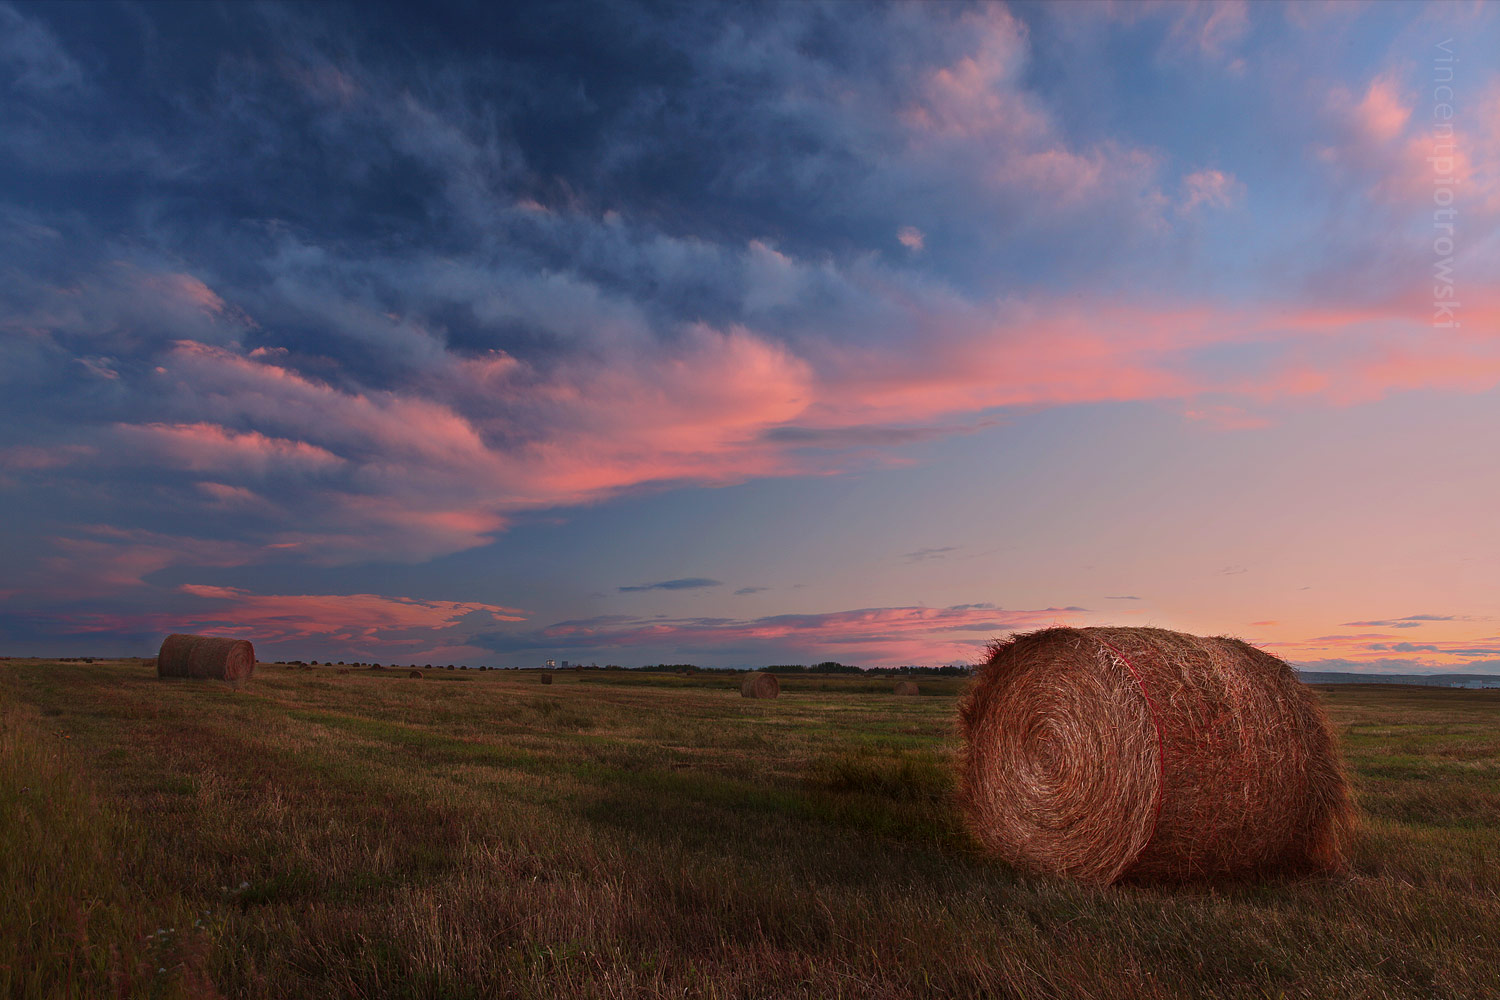 A photo of round bails of hay taken near Calgary Alberta shortly after a hail storm creating an amazing pink sky